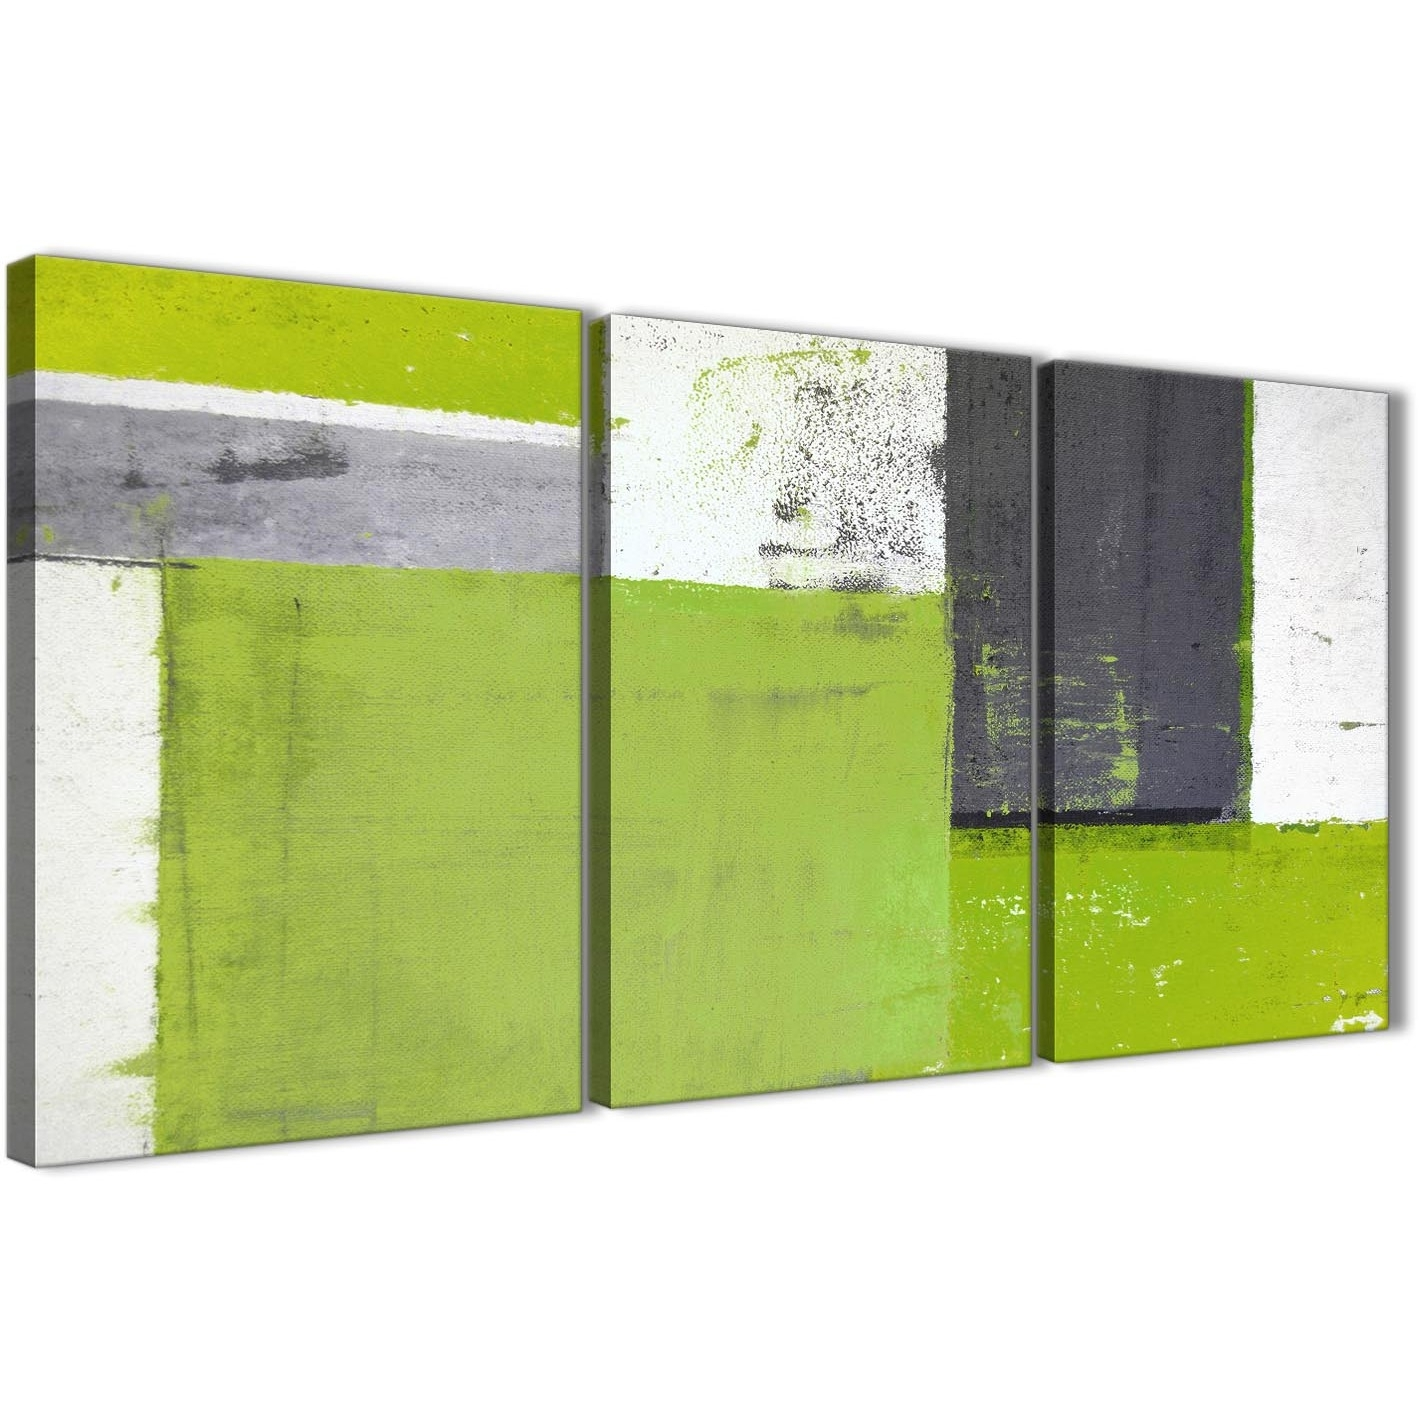 Lime Green Grey Abstract Painting Canvas Wall Art Print - Multi Set intended for Green Wall Art (Image 13 of 20)